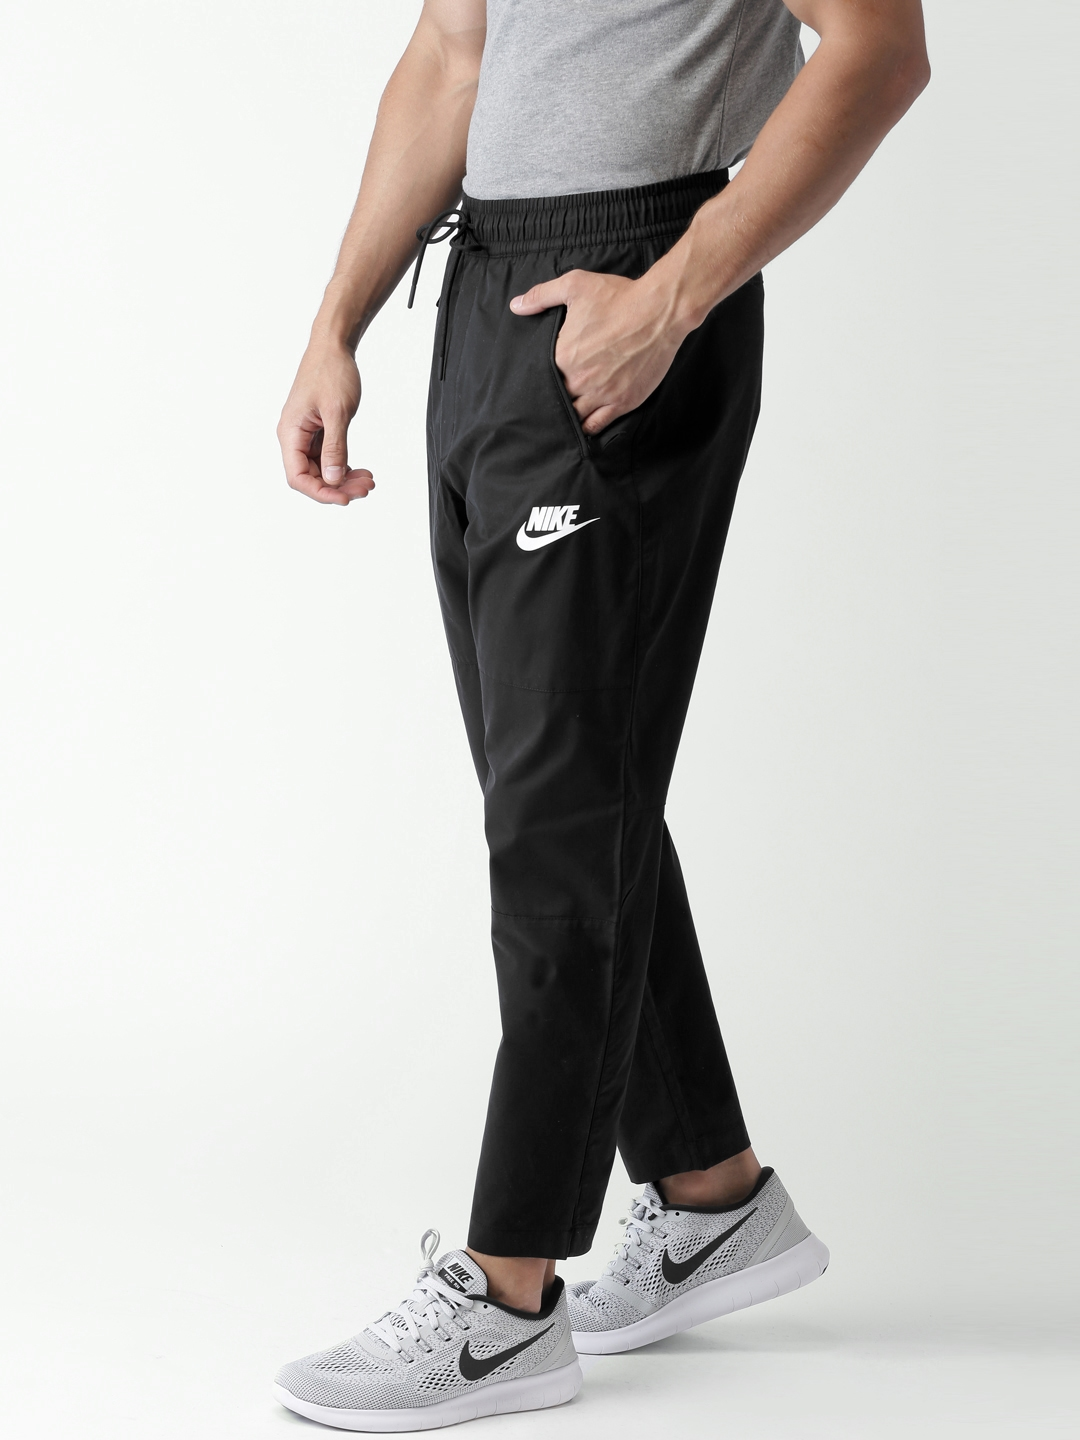 e3621341 Buy Nike Men Black Slim Fit AS M NSW AV15 PANT WVN Track Pants ...